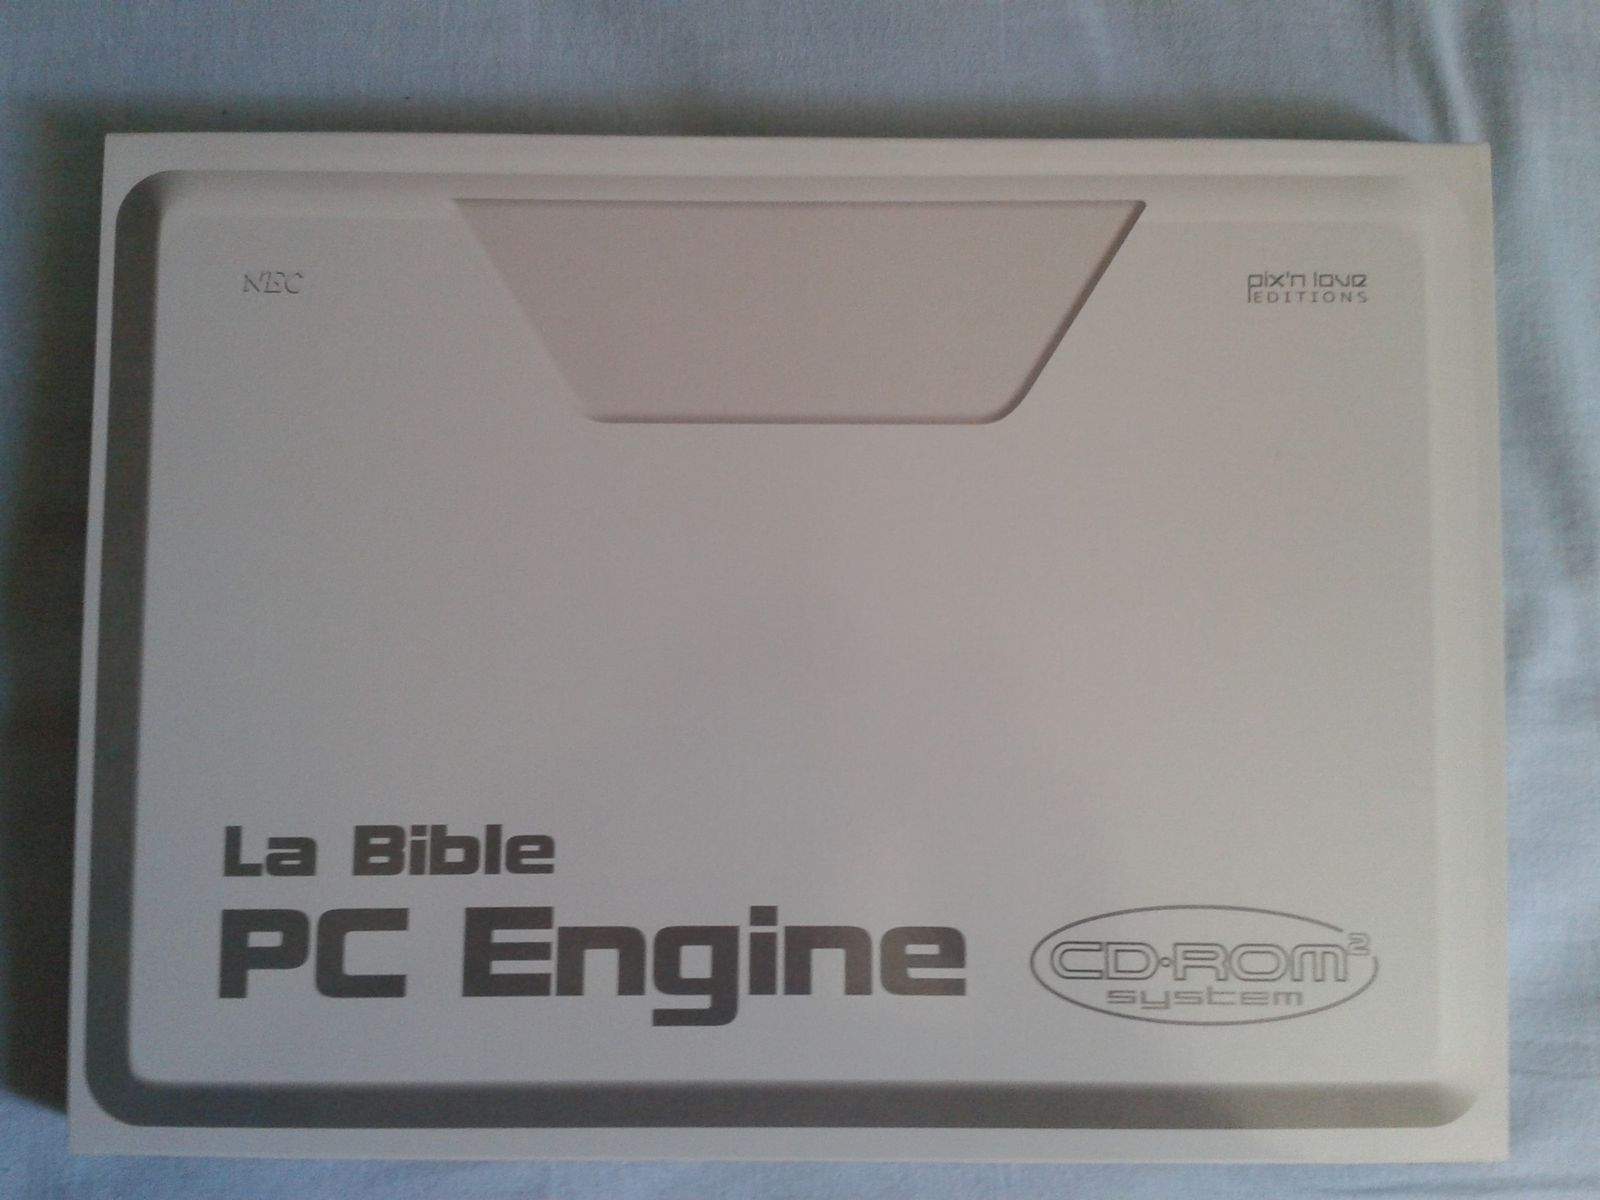 La Bible PC Engine collector